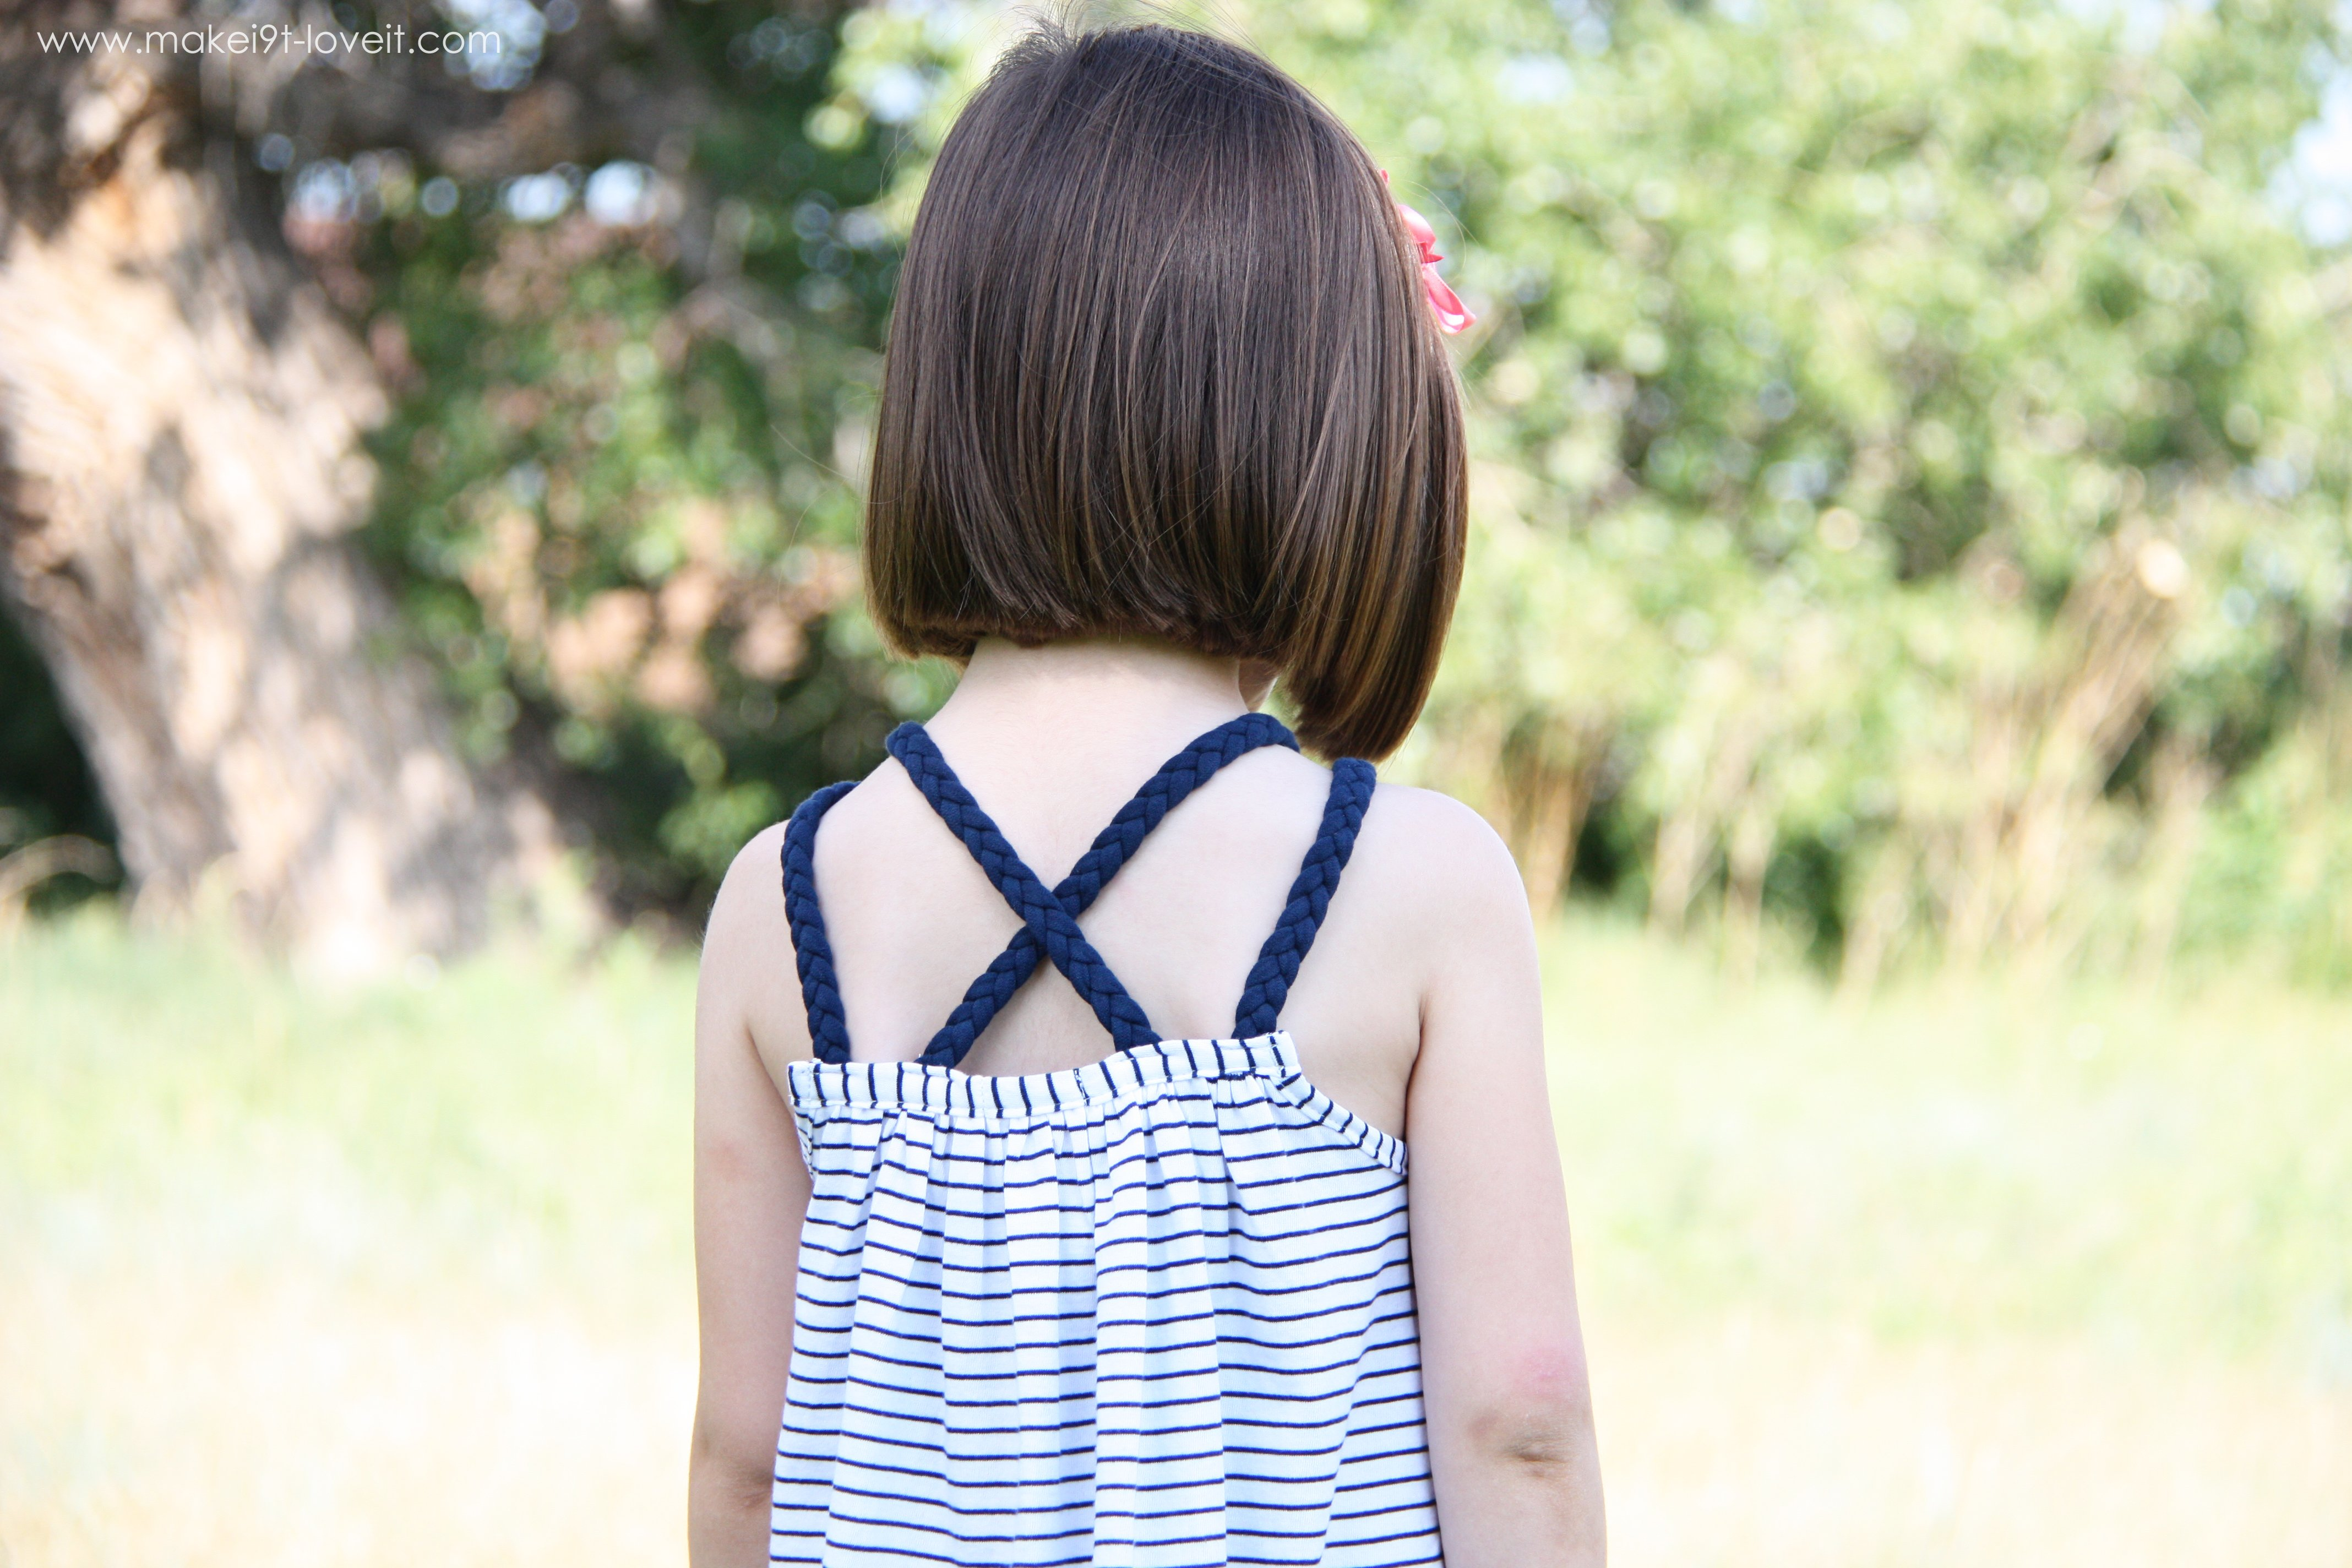 Dress (or top) with braided straps…from an old shirt